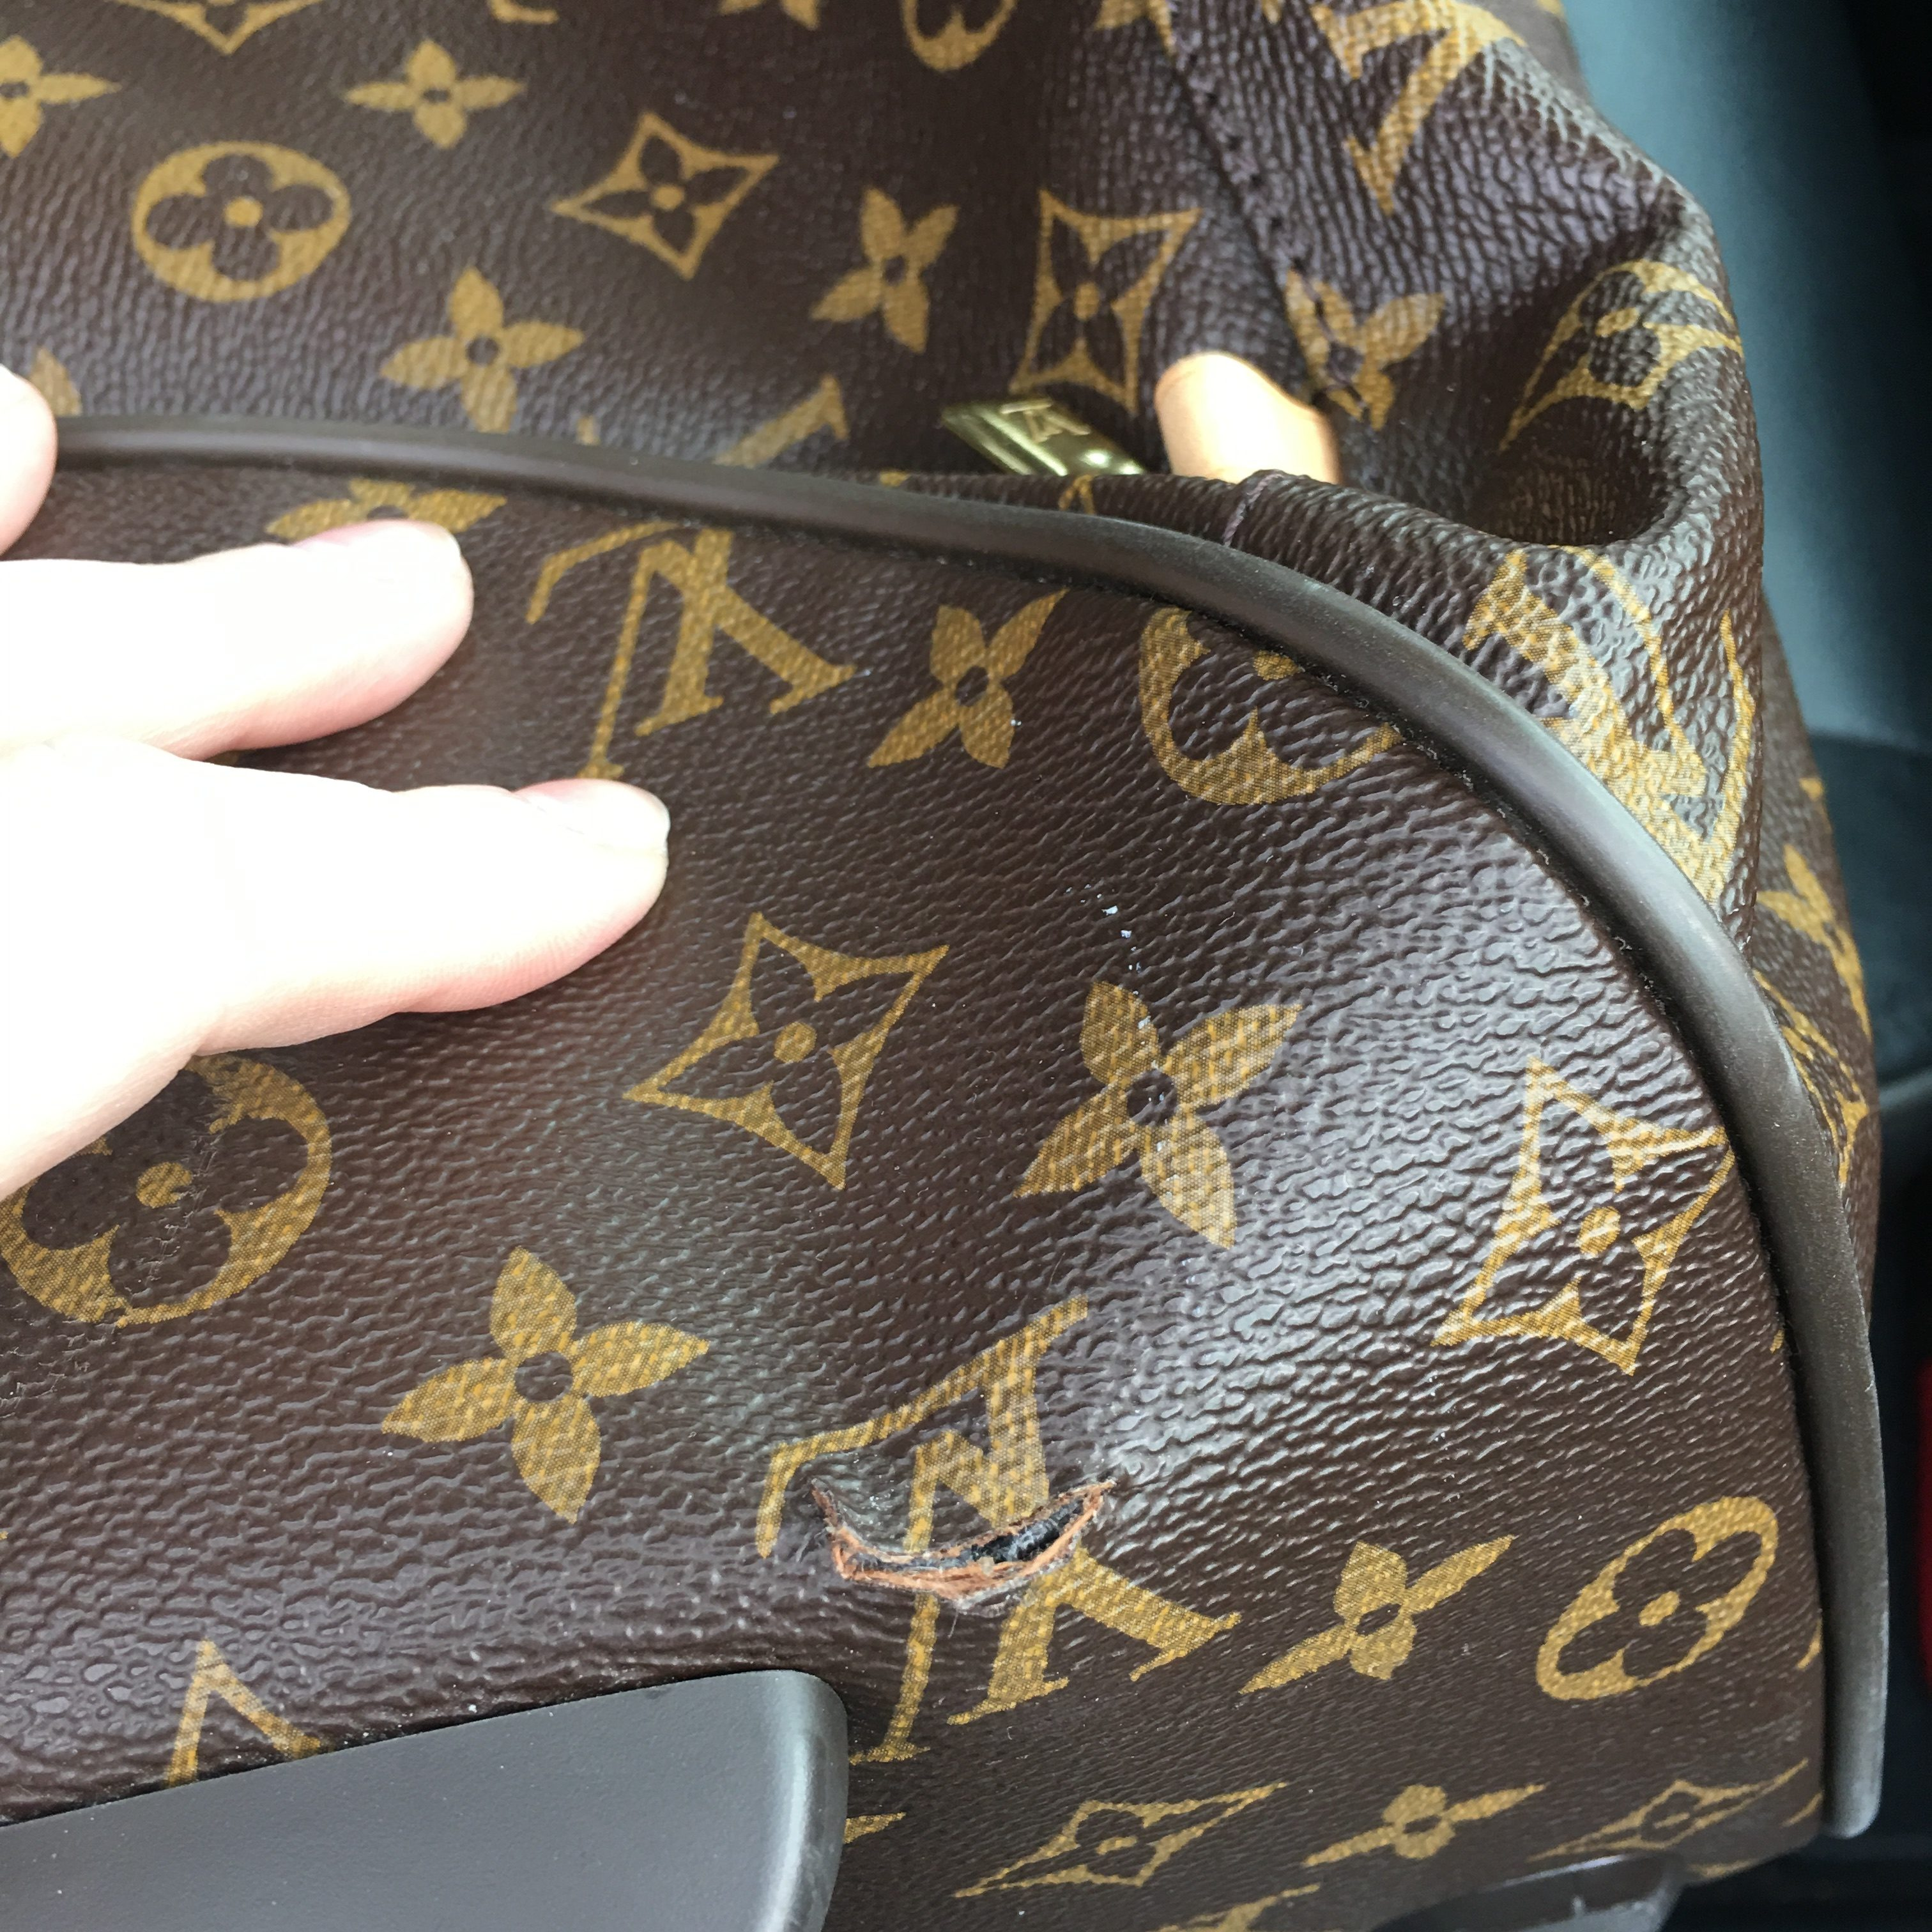 I Purchased A Small Louis Vuitton Carry On Bag For The Plane Back In March  Of 2015, And A Few Weeks Ago Found A Small Tear In The Leather